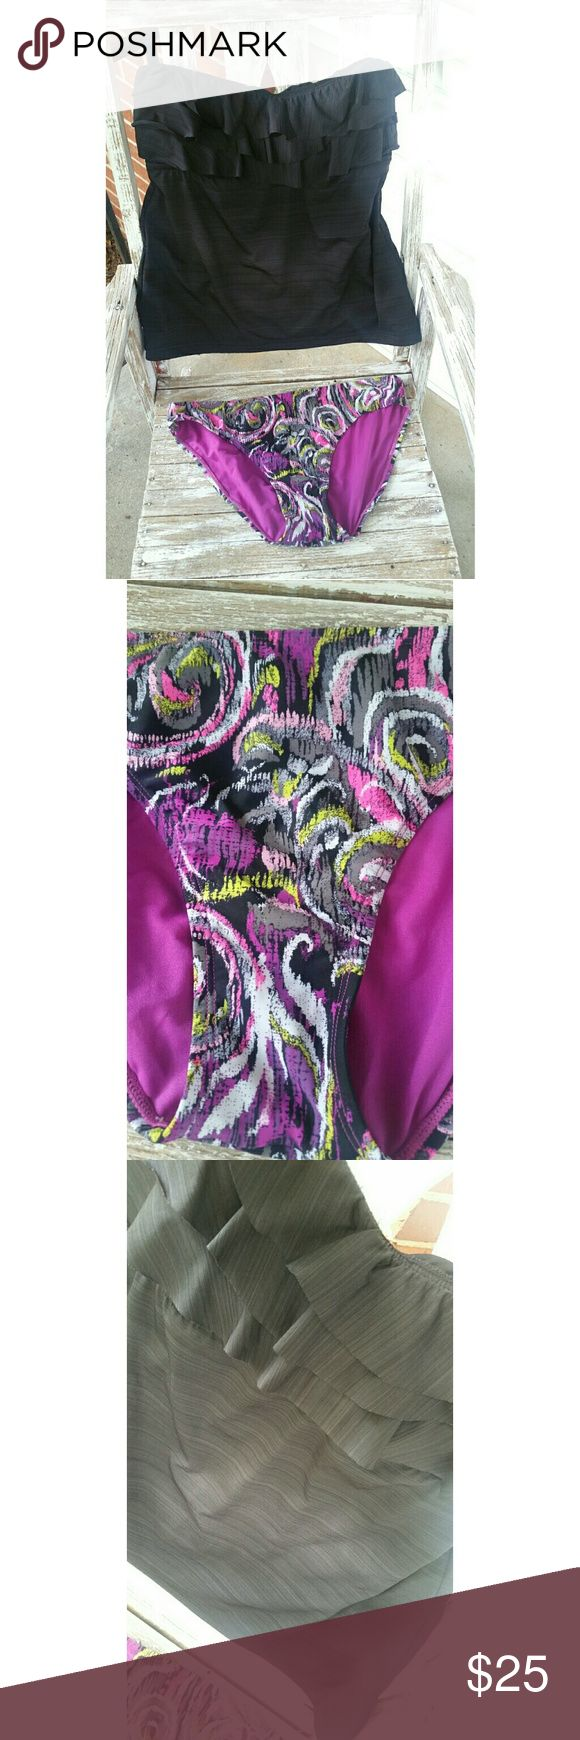 Mossimo Swimsuit Tankini & Bikini Bottom XL Brand New - No tags.  Never worn. Mossimo Black ruffled strapless tankini top and black/pink/purple bikini bottoms. Super cute!! Mossimo Supply Co. Swim